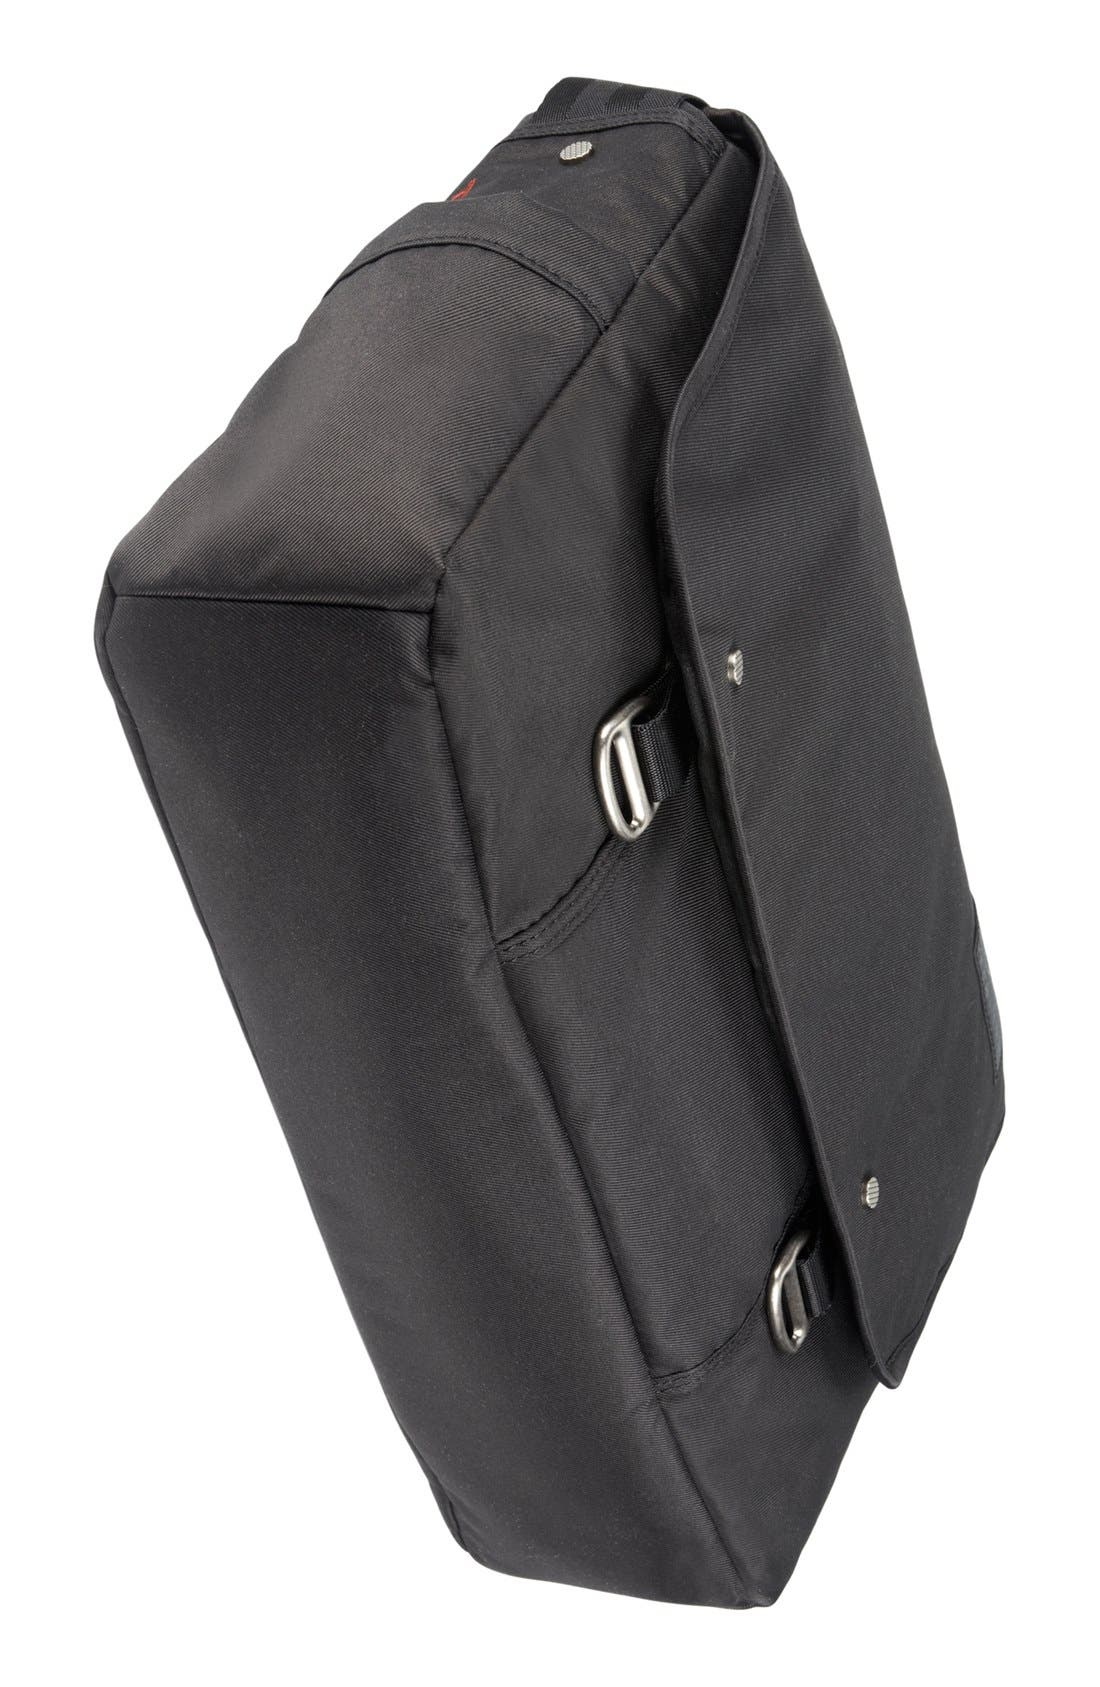 Alternate Image 3  - T-Tech by Tumi 'Icon - Usher' Messenger Bag